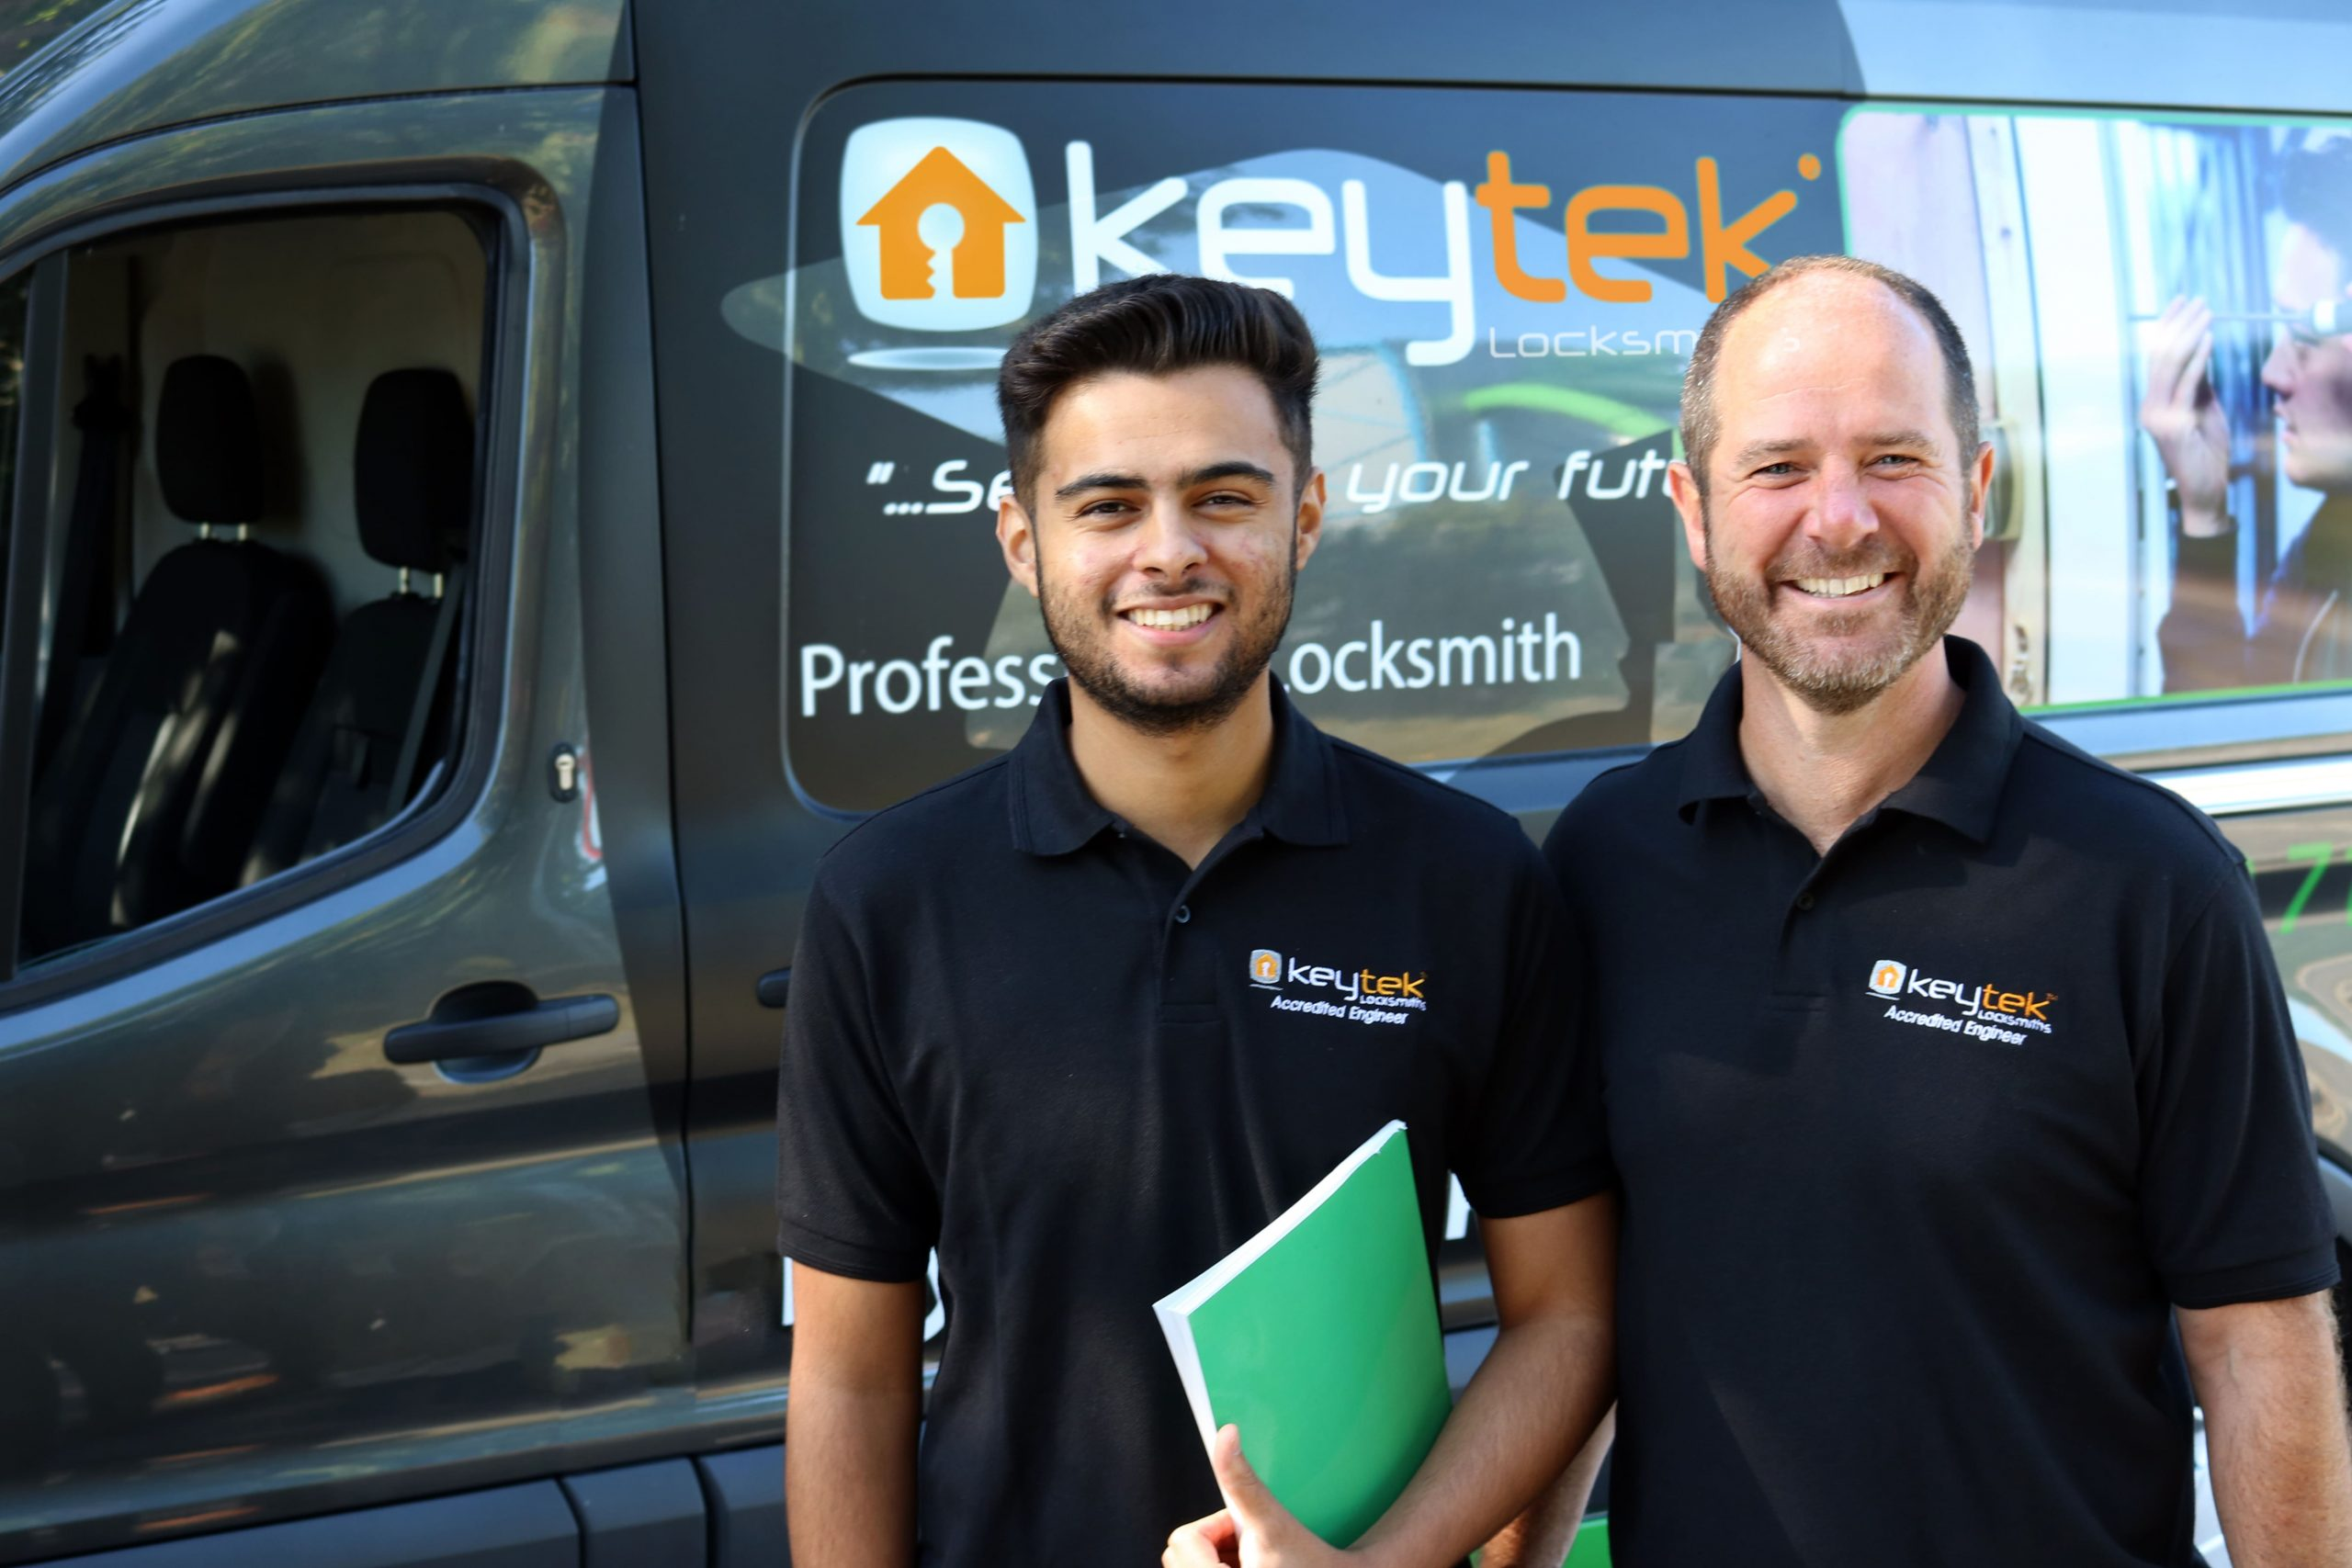 Keytek Locksmiths